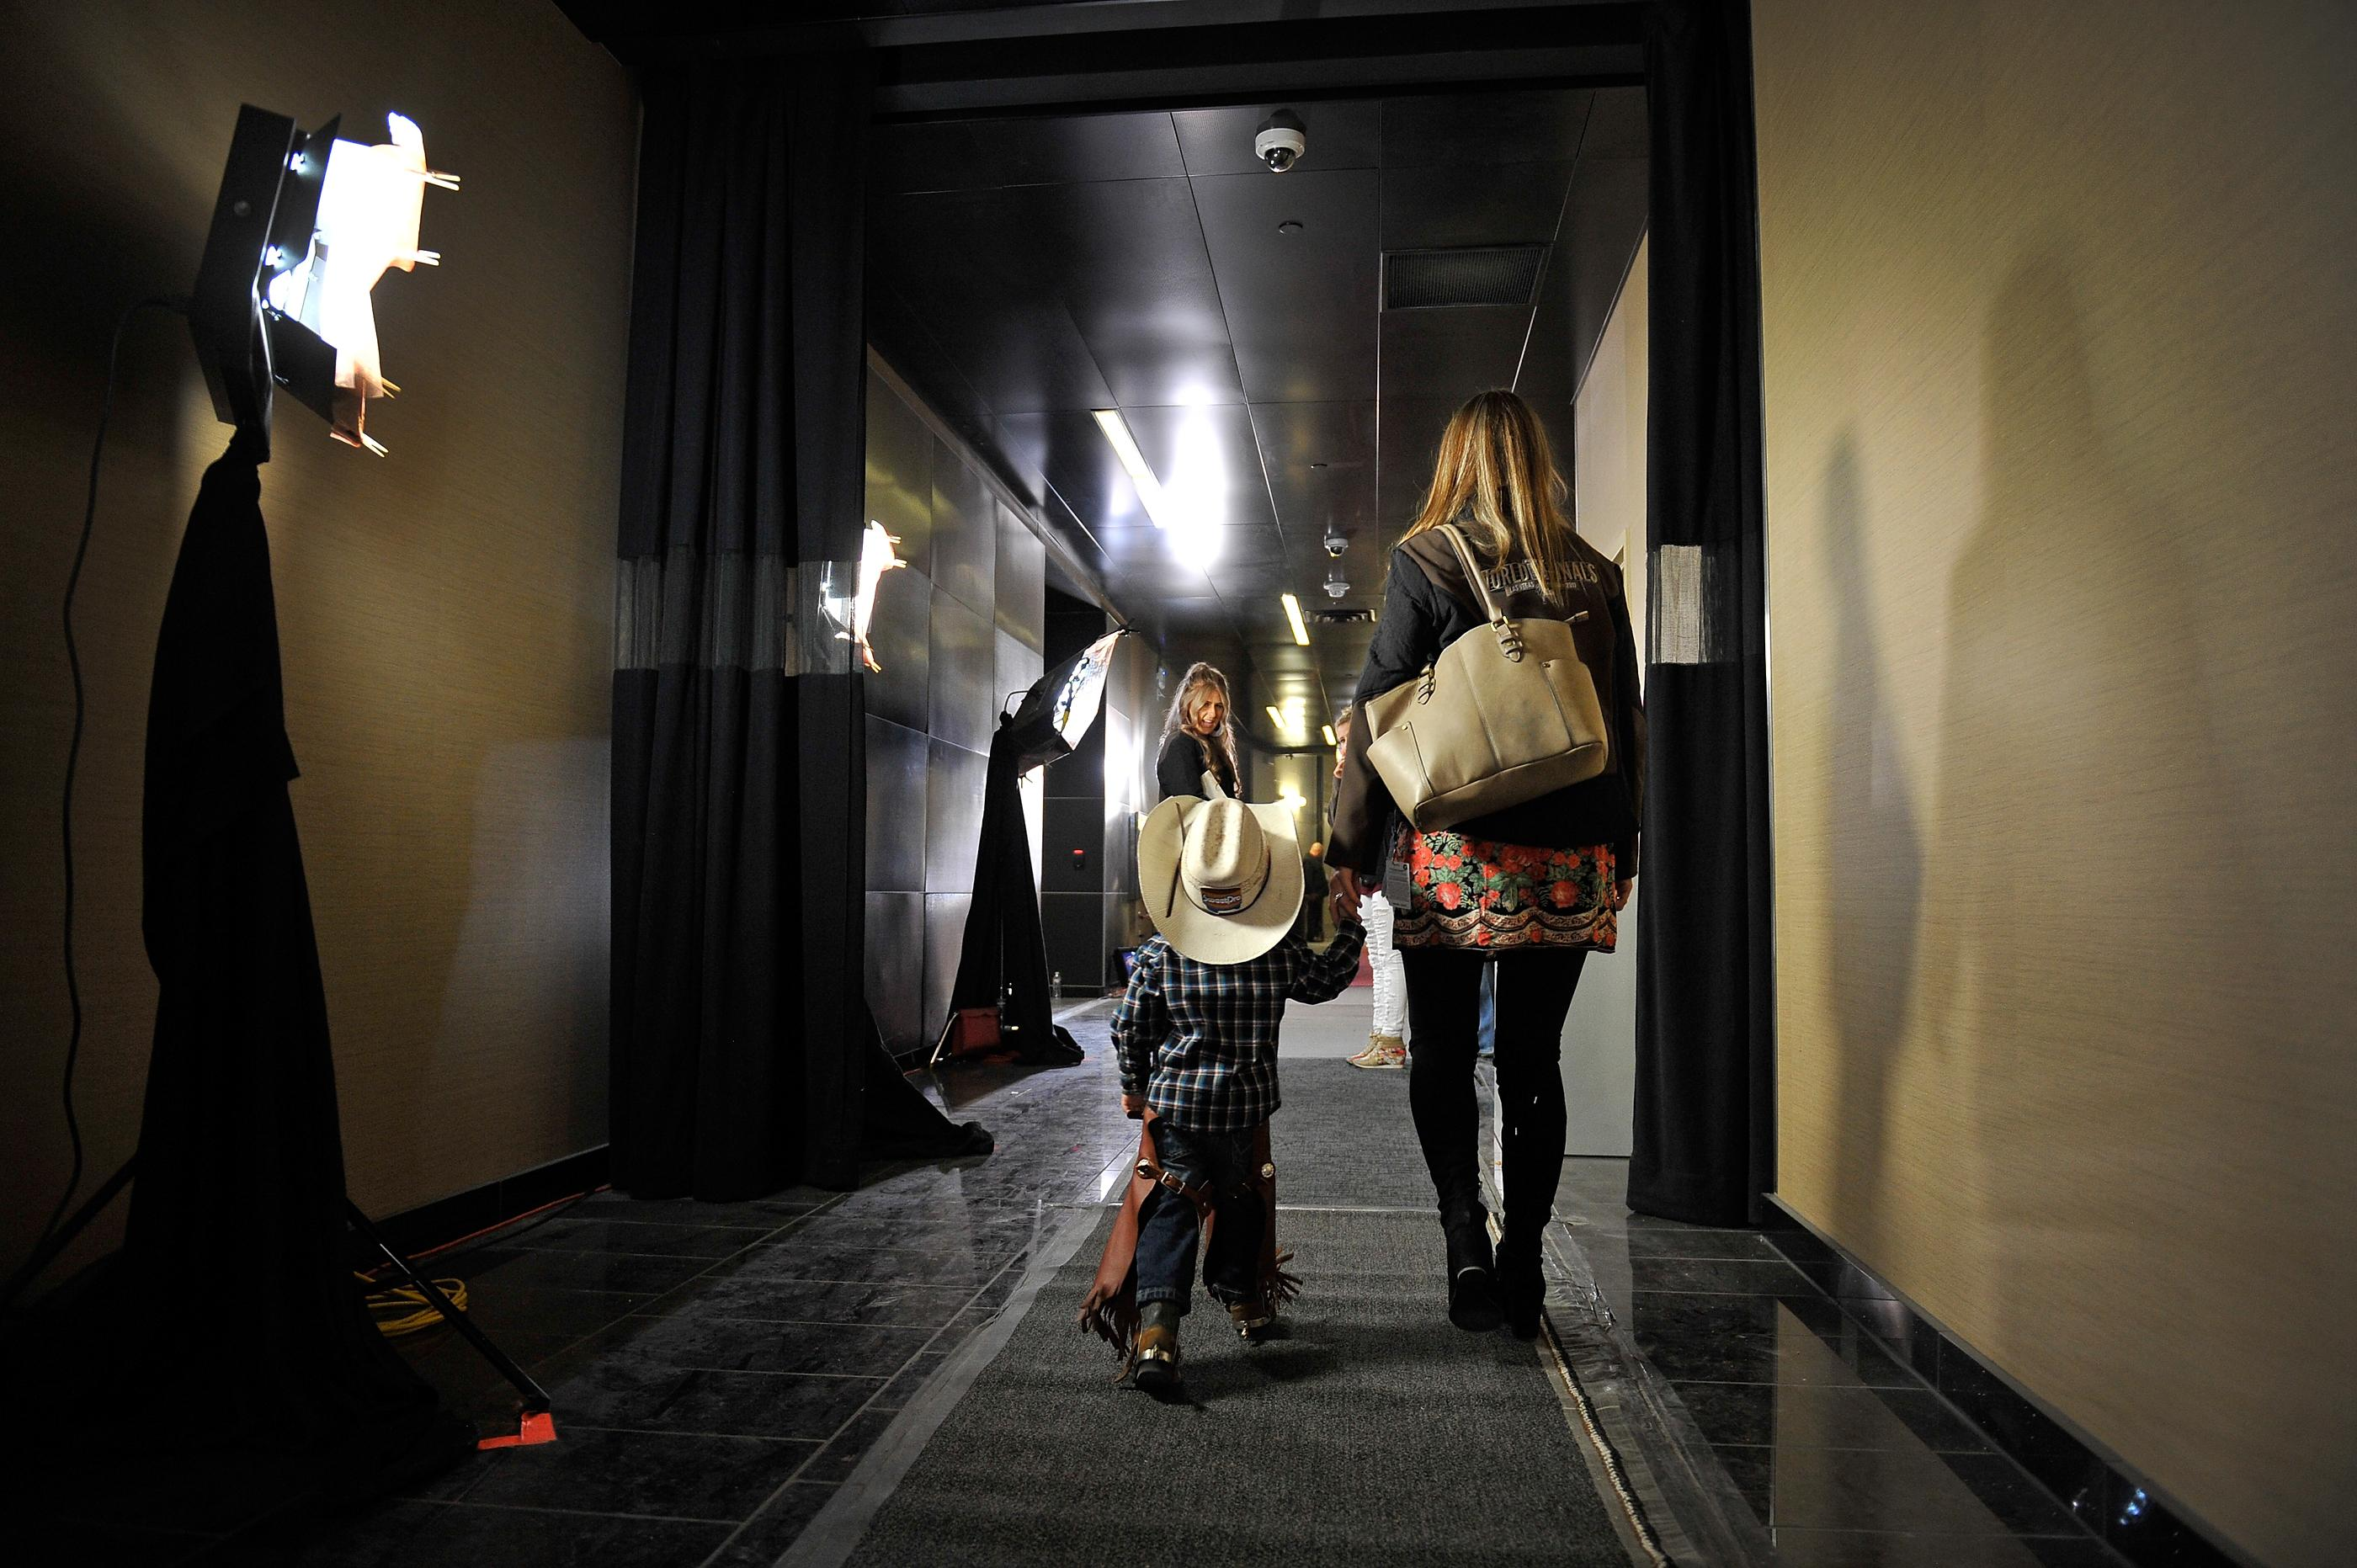 A young cowboy is escorted through the halls during the PBR World Finals at T-Mobile Arena Sunday, Nov. 5, 2017, in Las Vegas. [David Becker/Las Vegas News Bureau]